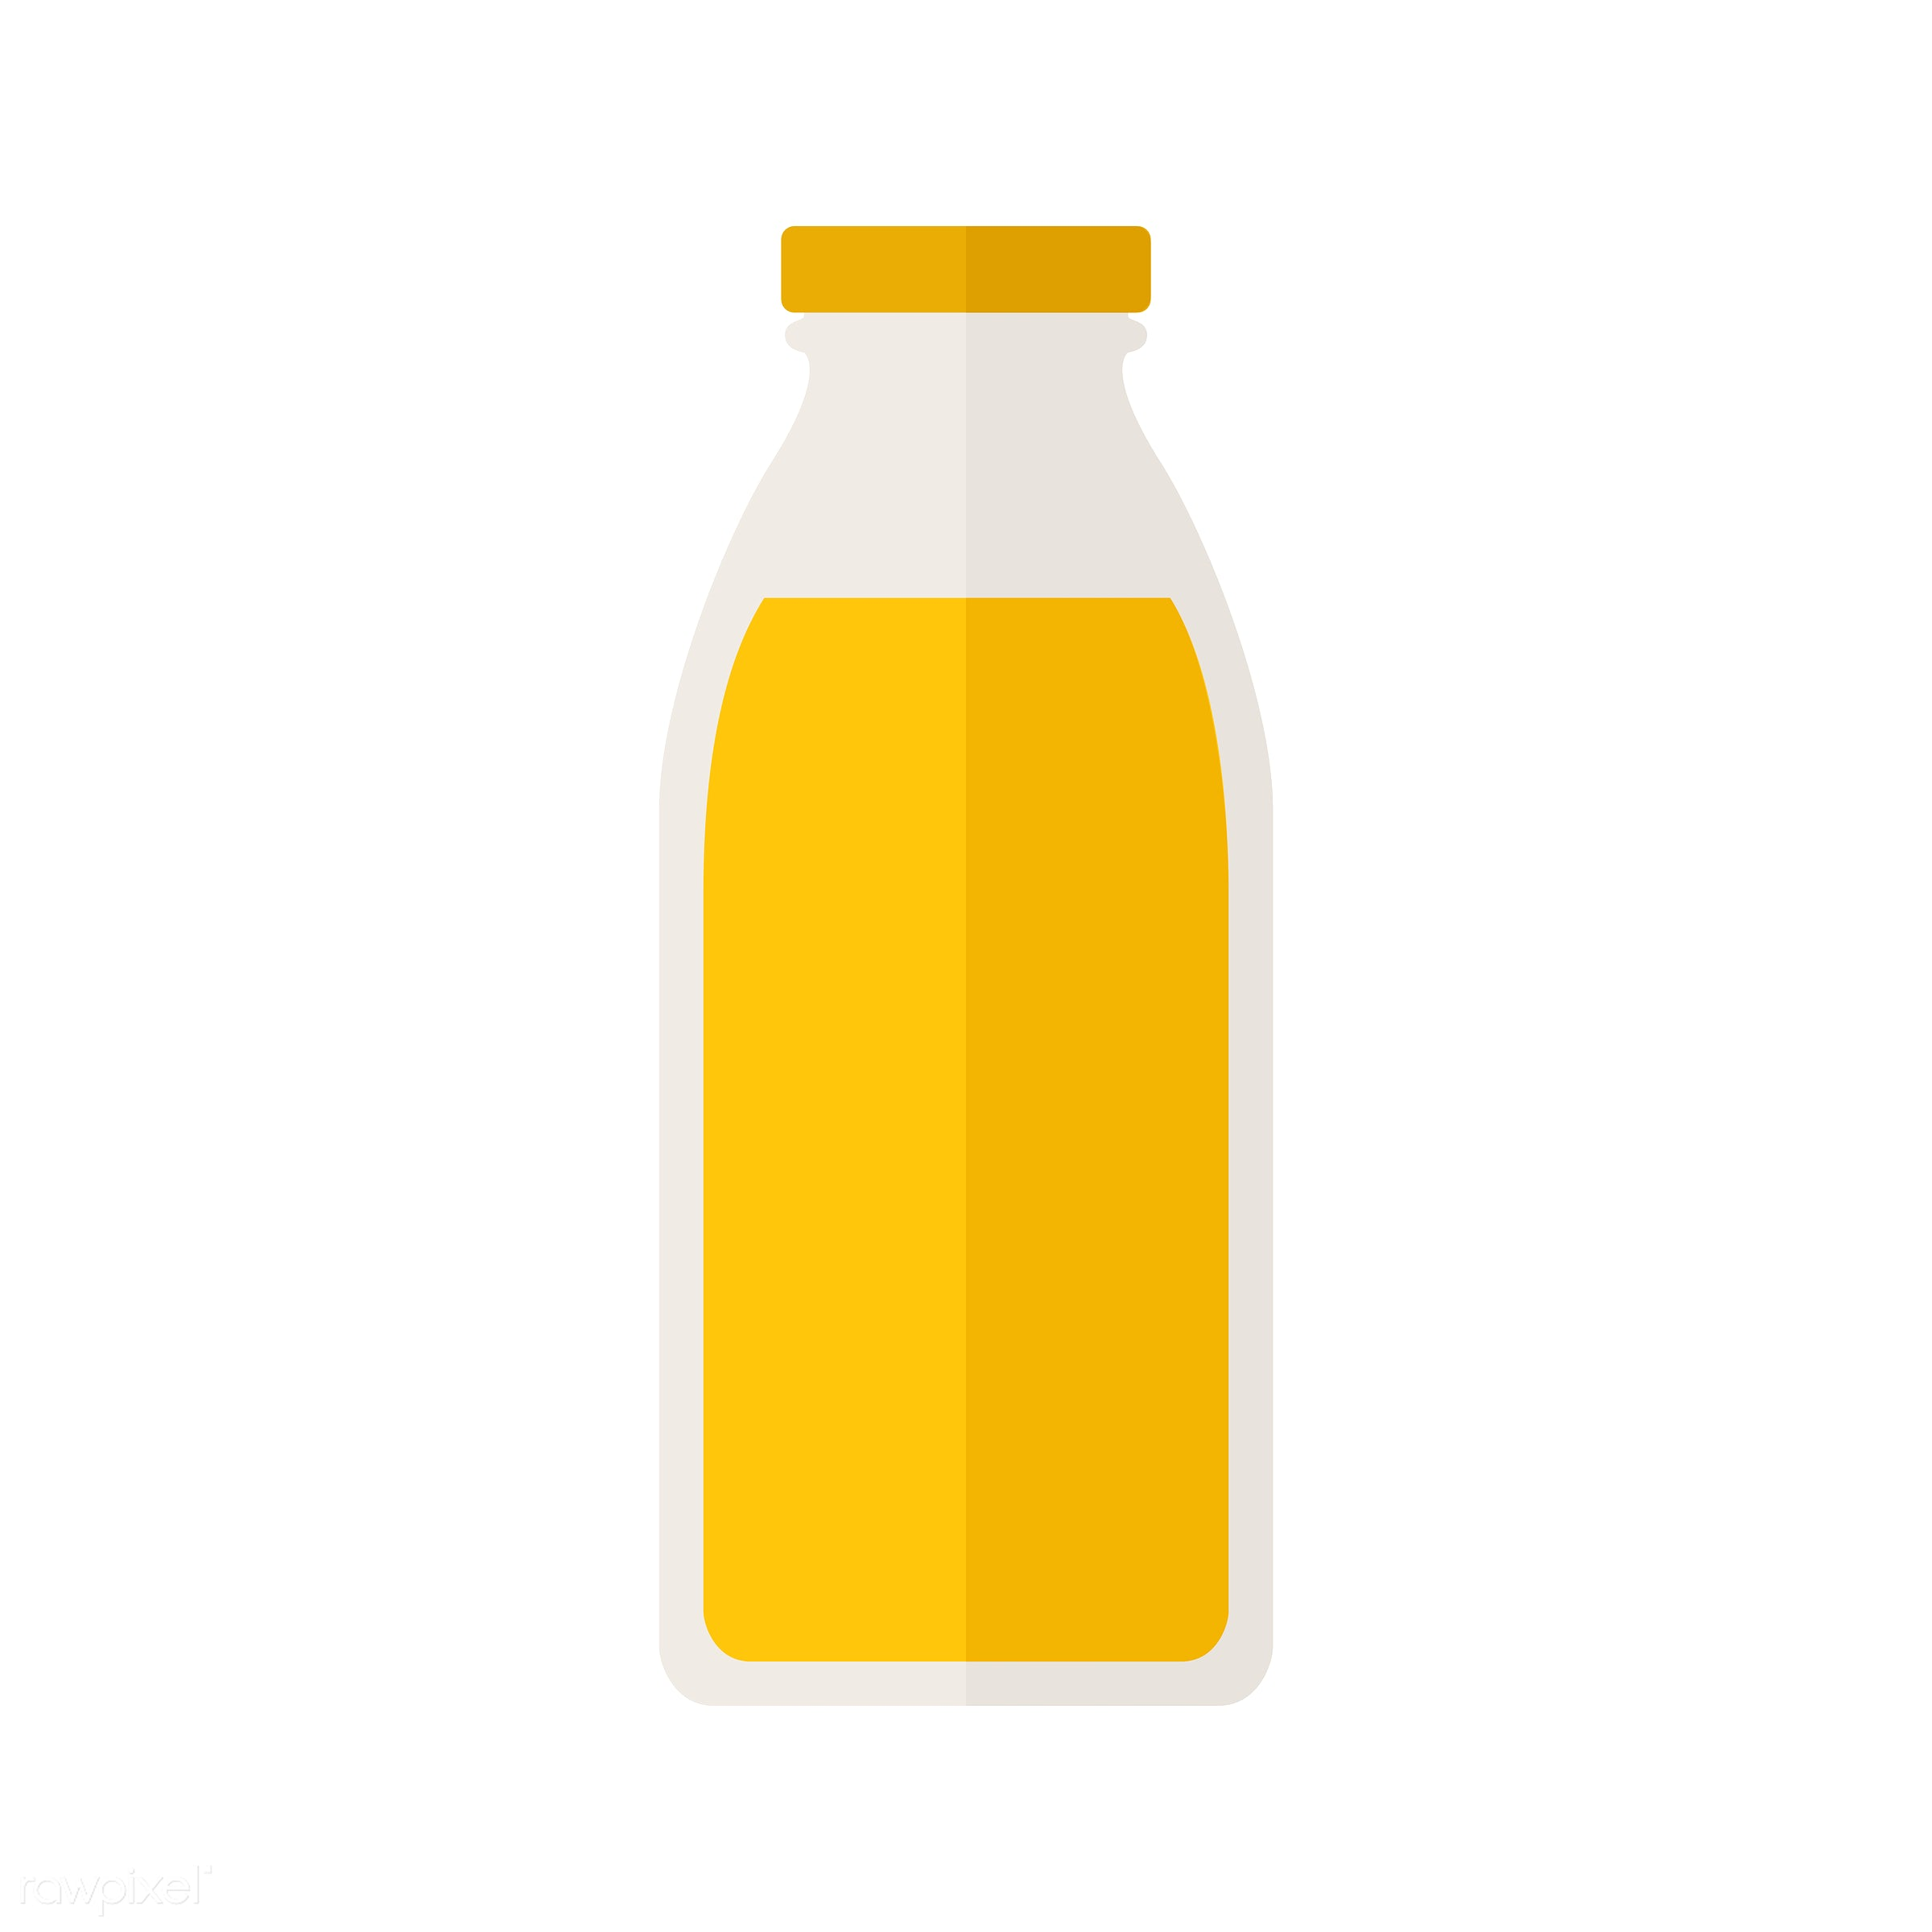 vector, graphic, illustration, icon, symbol, colorful, cute, drink, beverage, water, bottle, glass bottle, soda, sweet drink...